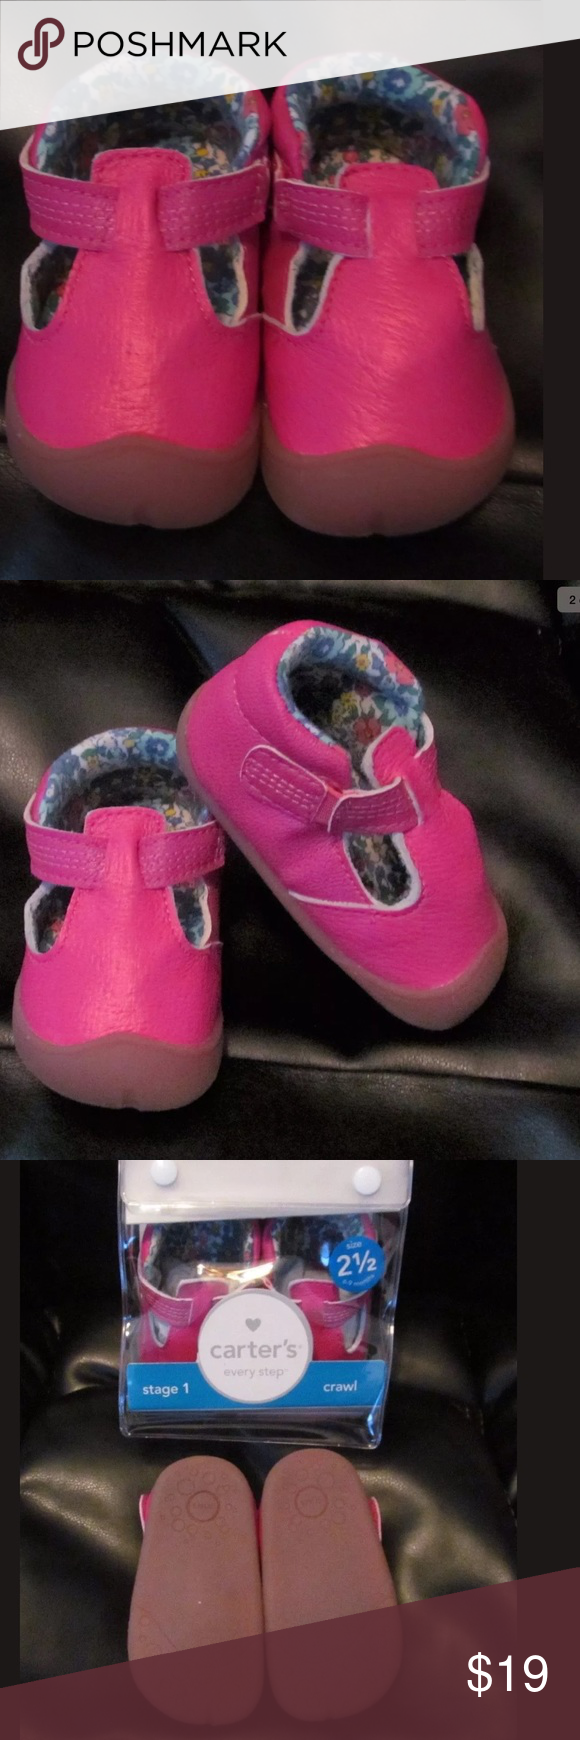 "Carter's Stage 1 Baby Girl Pink Leather Shoes Stage 1 Crawl Shoes By Carter's  If your infant crawls on multiple points of support including hands, knees and toes.  soft, protective toe caps lets baby glide with ease. seamless linings for everyday comfort roomy fit lets bones and muscles grow naturally easy on and off slip-ons ""Every step technology is designed to stimulate muscles and balance development."" -Timothy Derrick, Ph.D Biomechanics  Style: Amy Color: Island Pink Size 2.5 MSRP $44…"